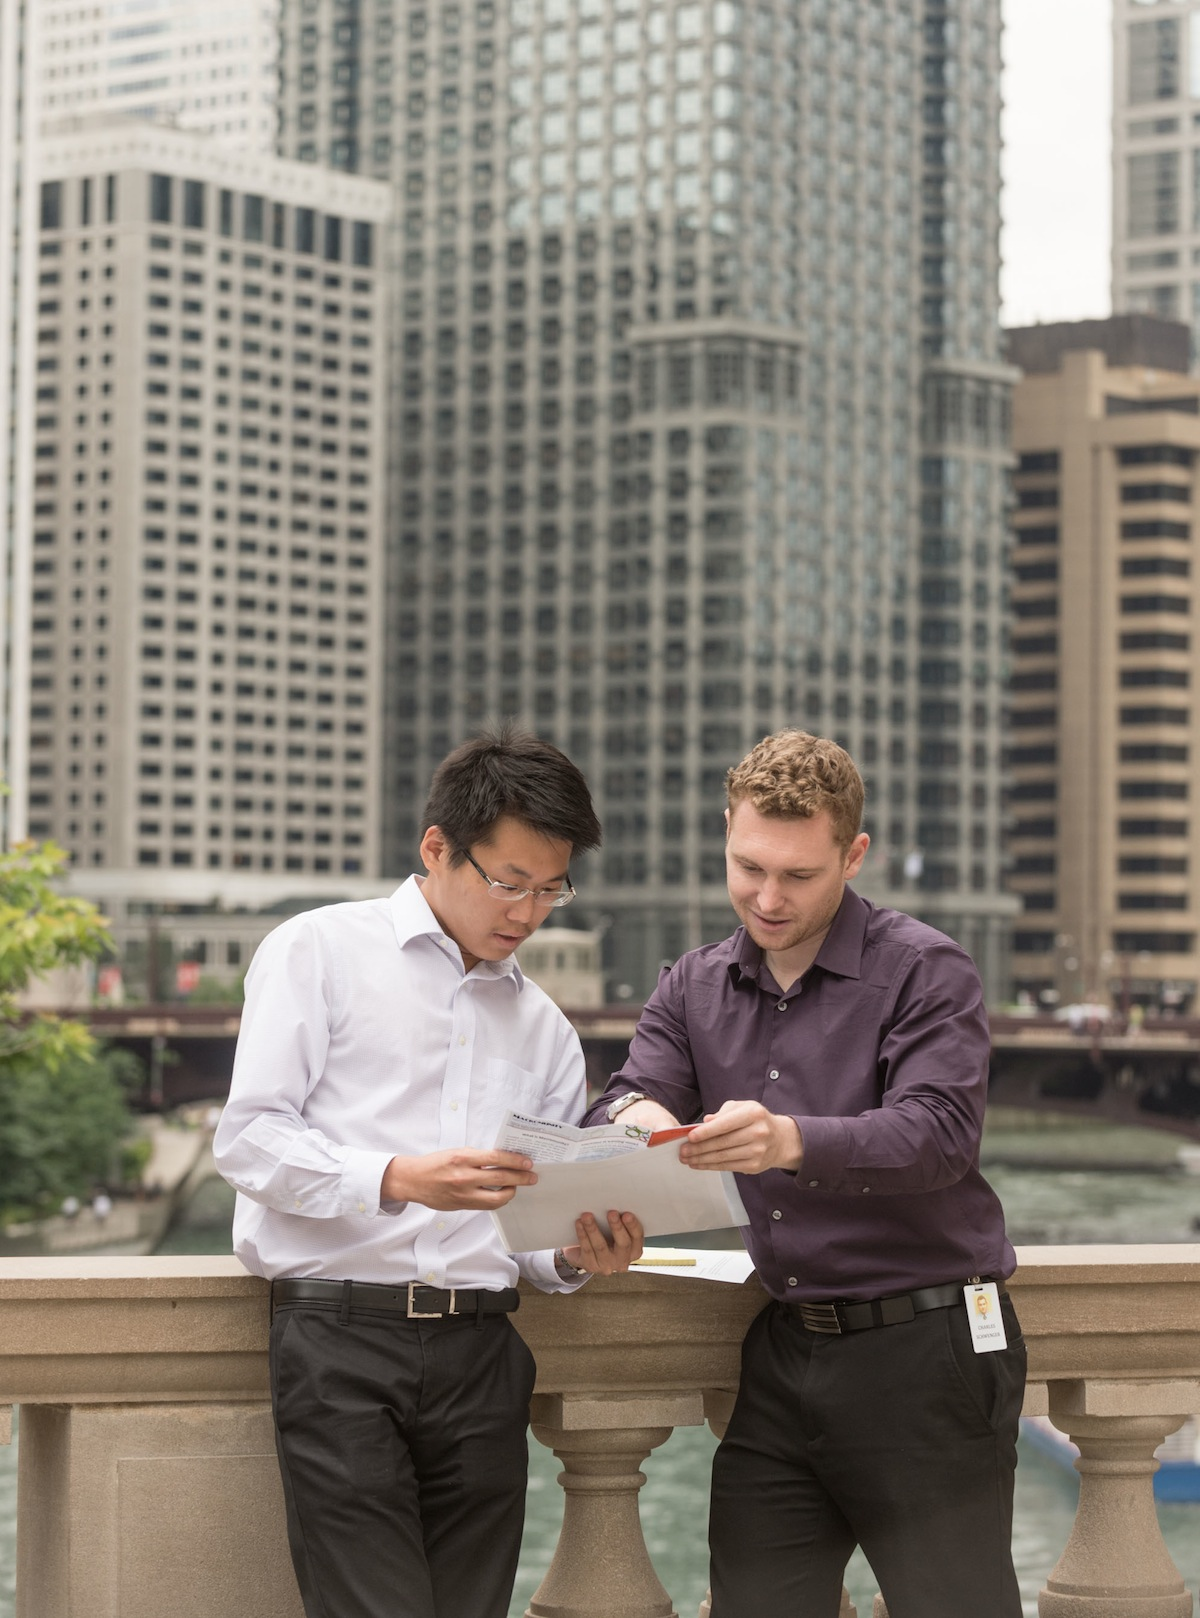 Male student intern in Chicago